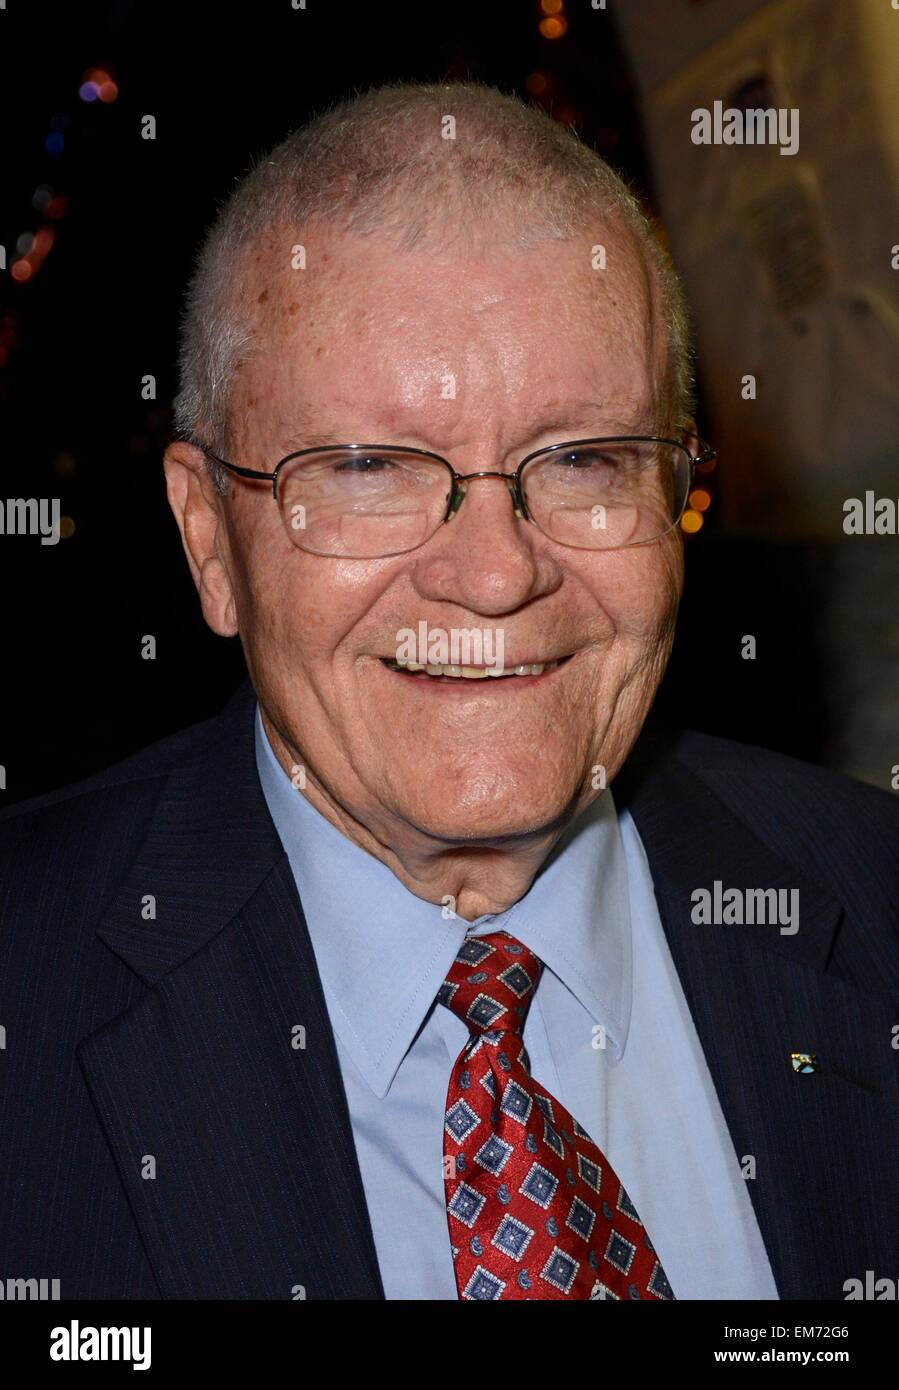 Garden City, NY, USA. 16th Apr, 2015. Fred Haise in attendance for Apollo 13 45th Anniversary Reunion Celebration, - Stock Image